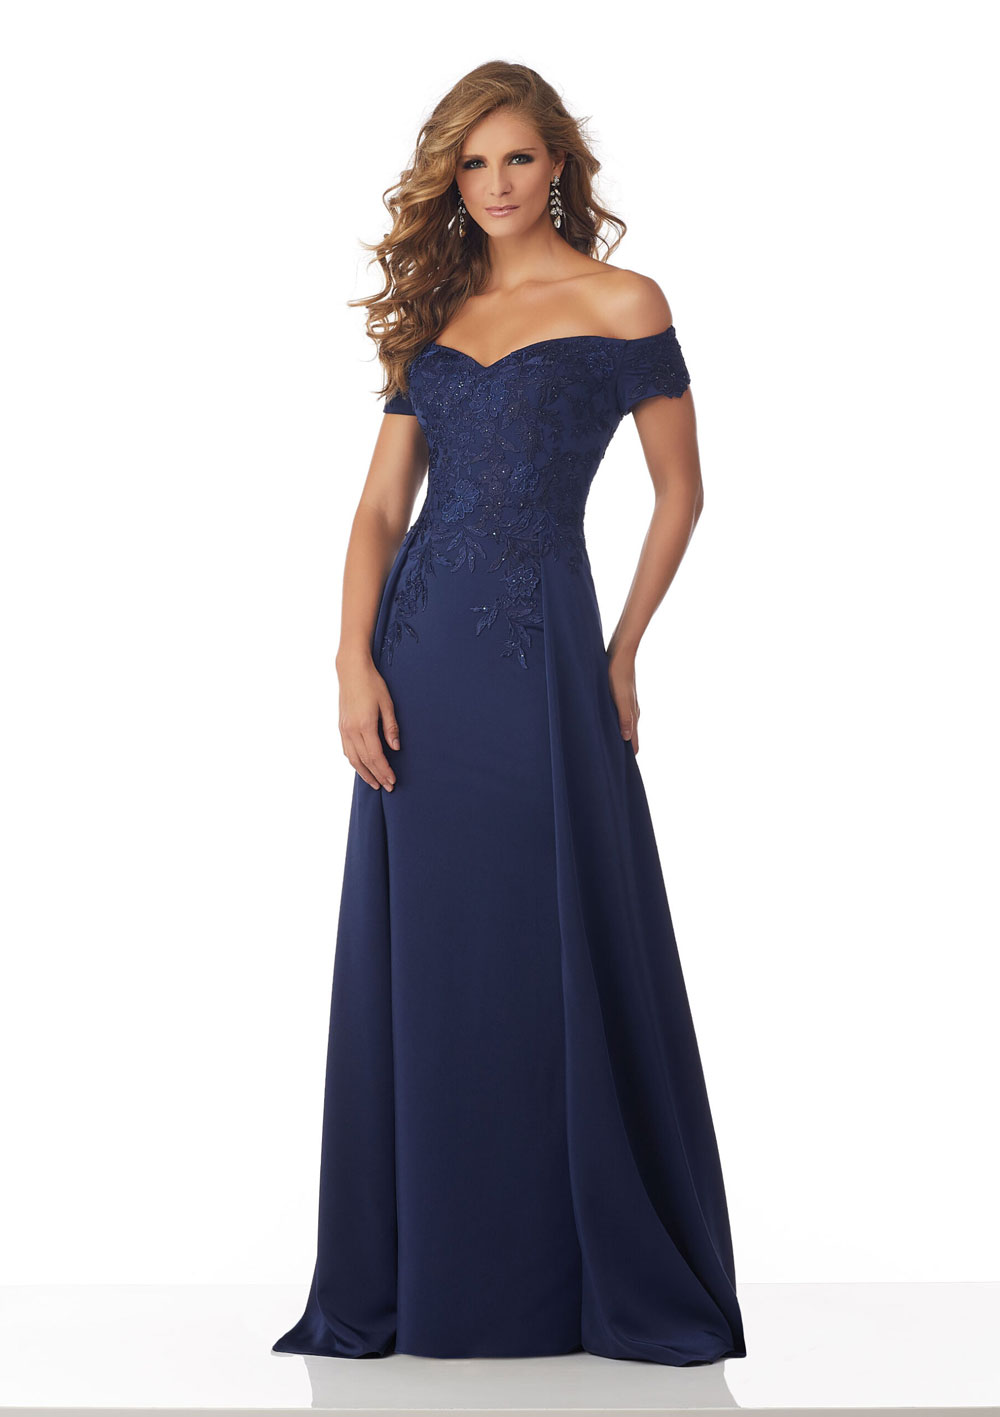 Stretch evening gown , with sweetheart bodice